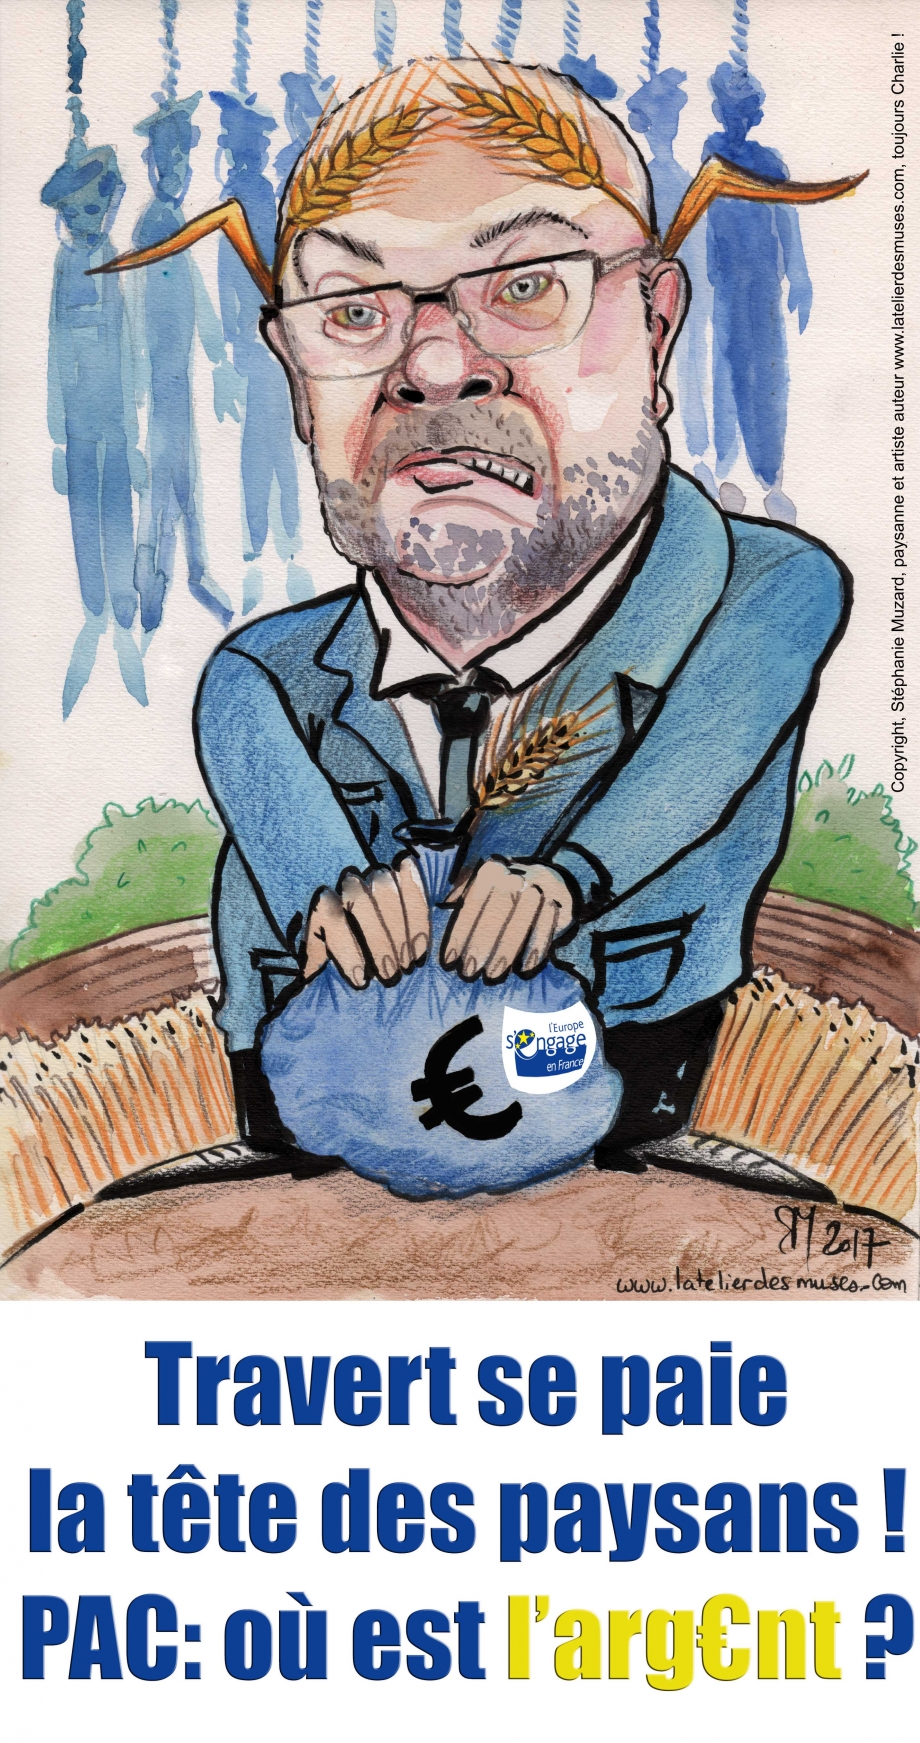 caricature-travert-web.jpg